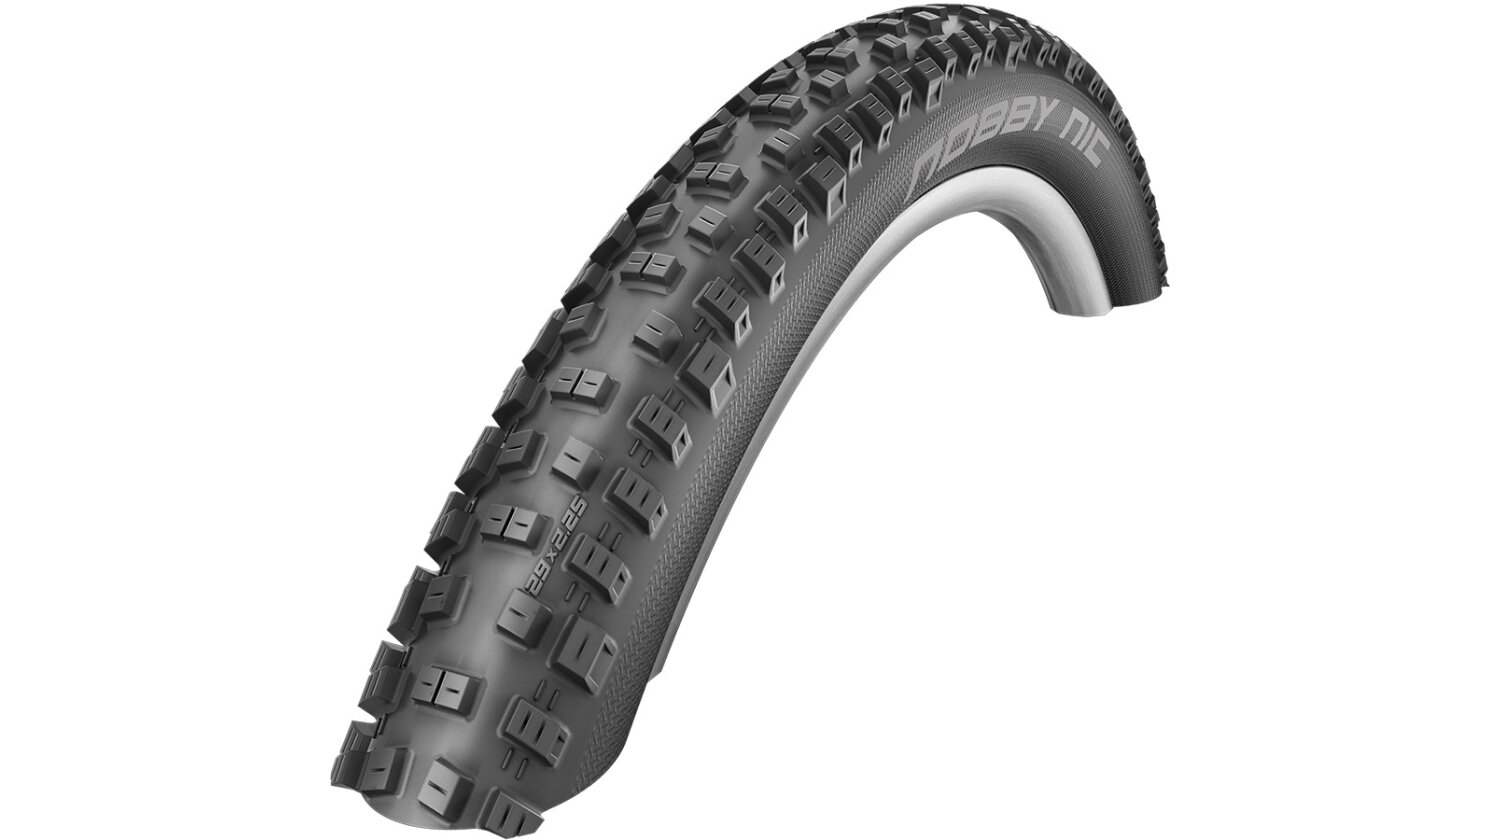 Schwalbe Nobby Nic Evolution 4-Cross 26 Faltreifen 57-559 SnakeSkin, TL Easy, GateStar